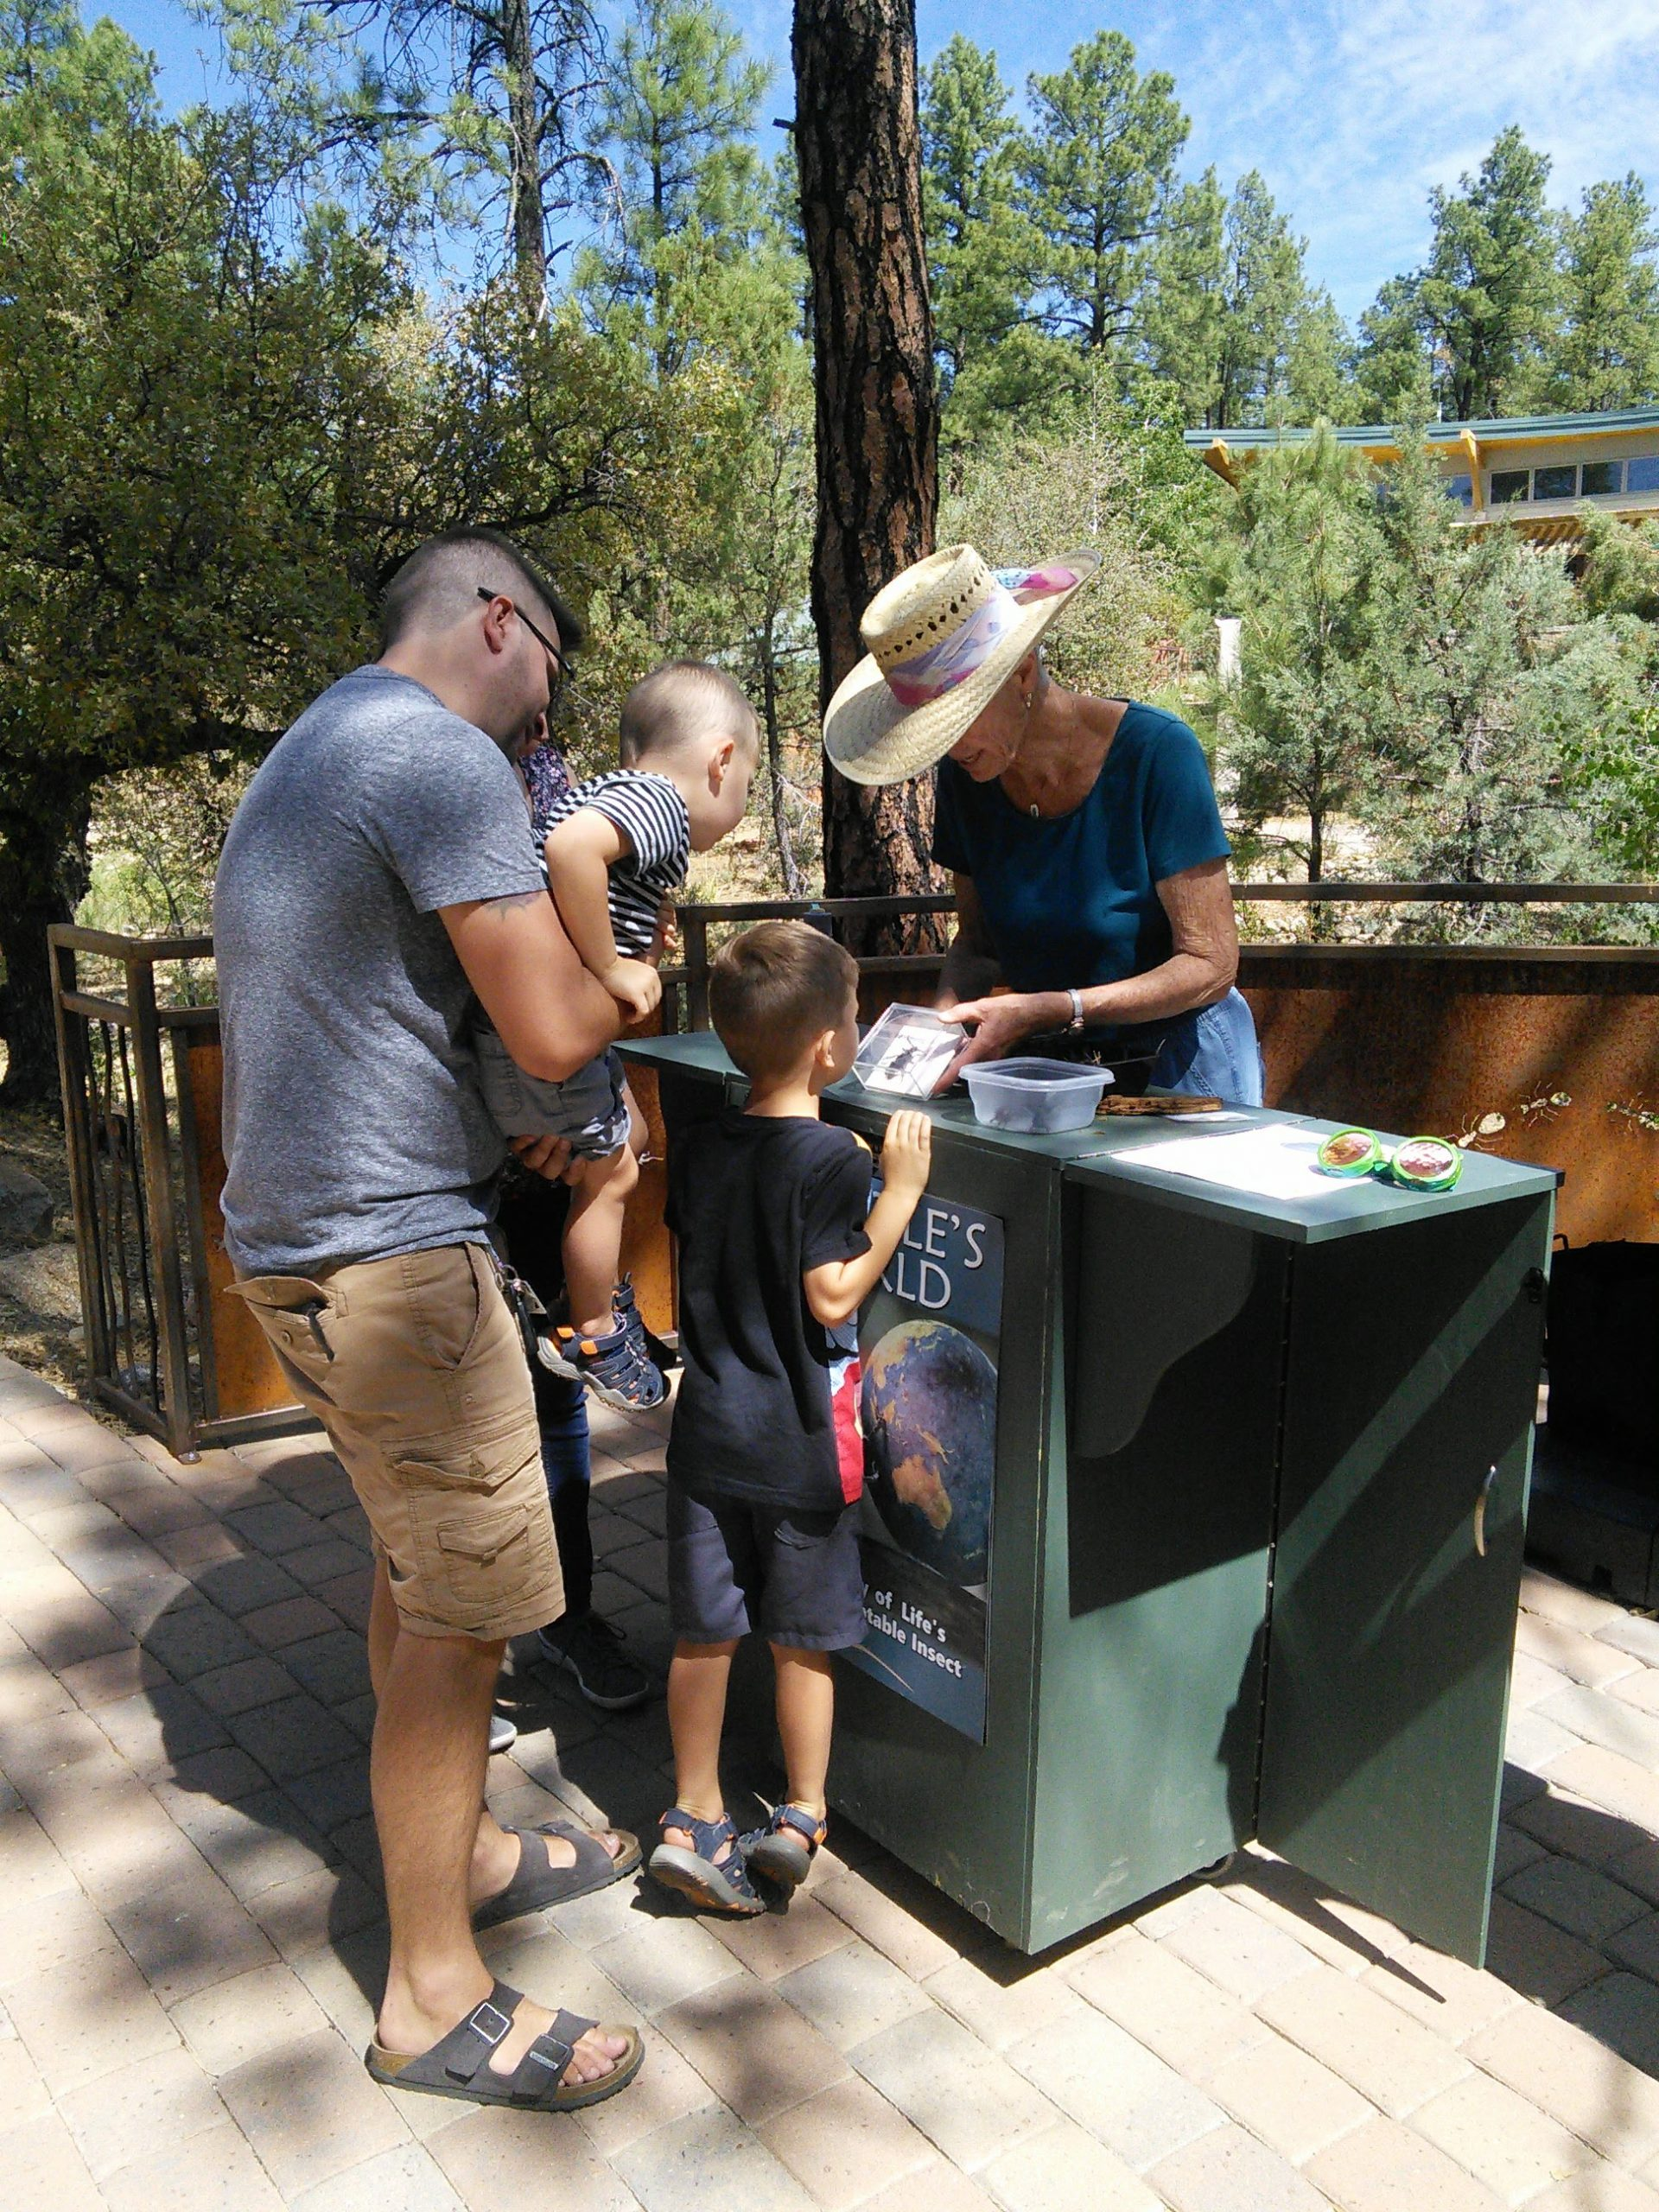 Family Events in the Discovery Gardens